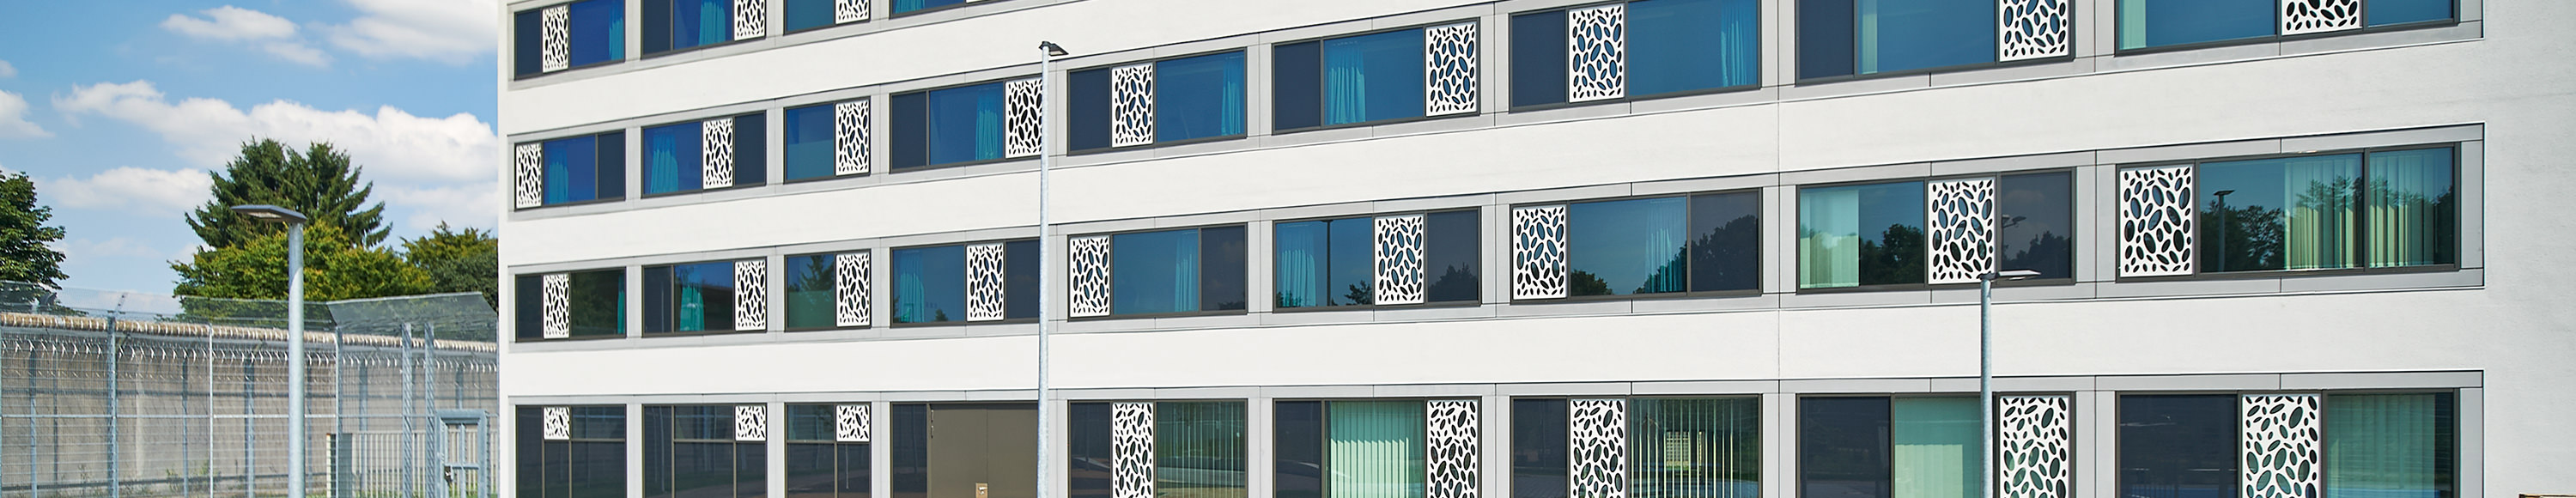 Building Systems facade systems burglar resistant